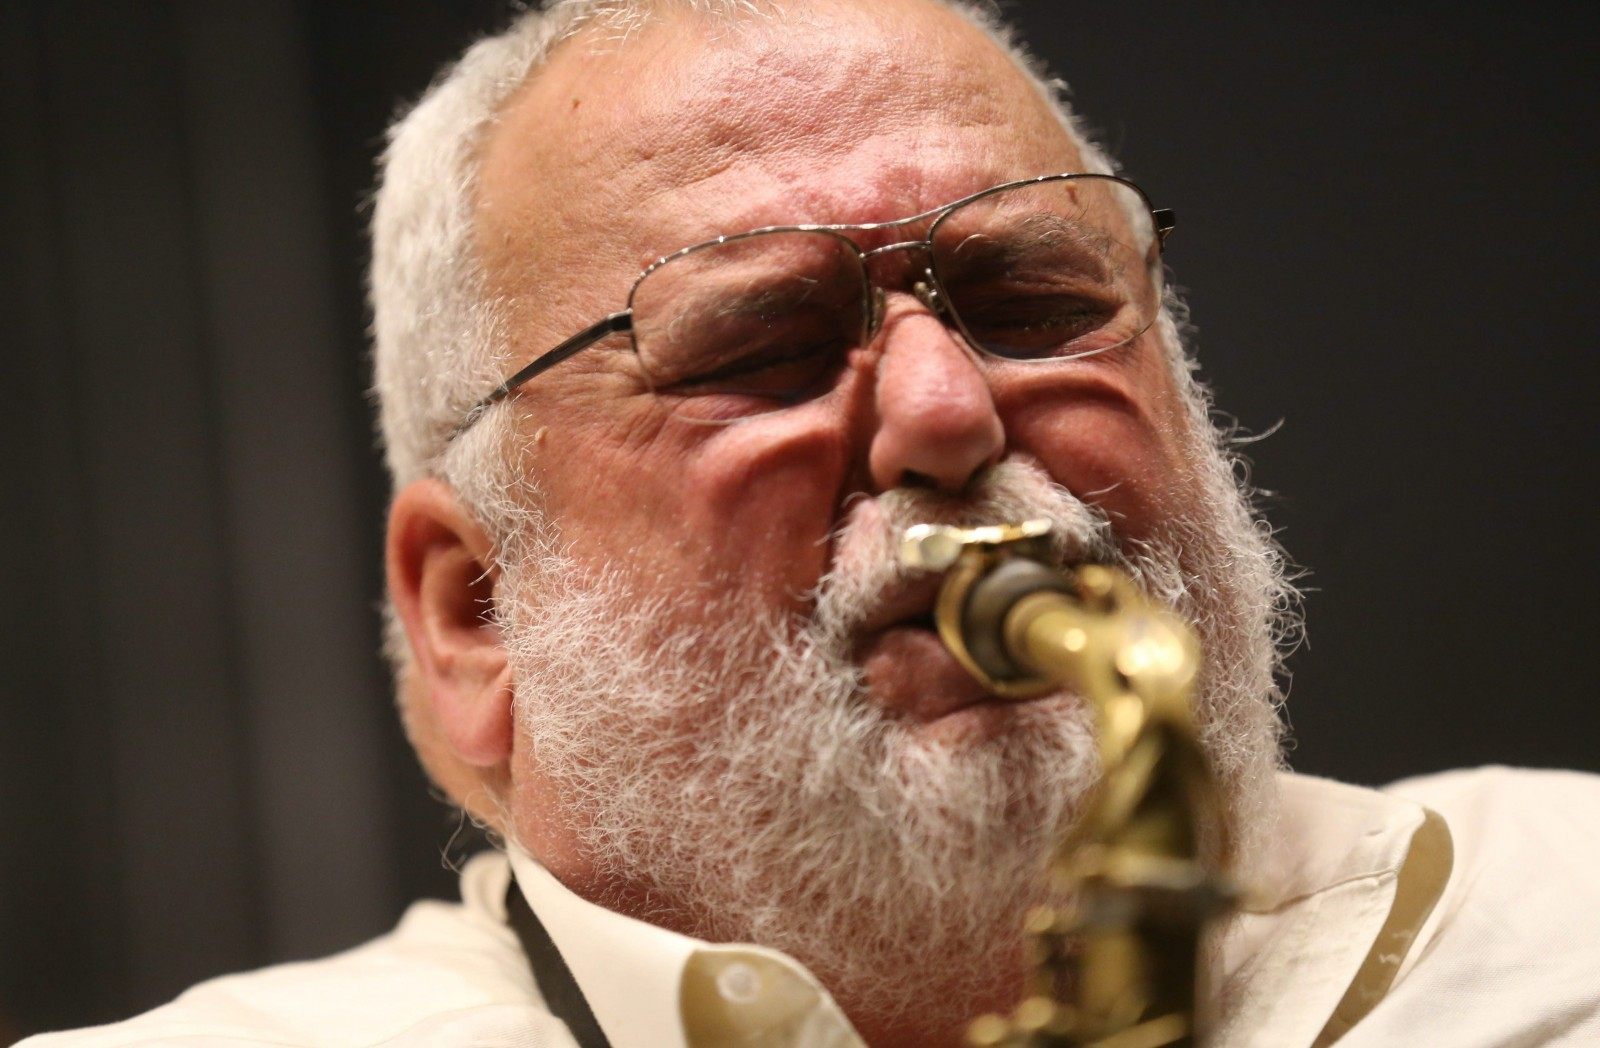 Bobby Militello will feature on the alto sax in a coming concert at Pausa Art House in Allentown. (Sharon Cantillon/Buffalo News)